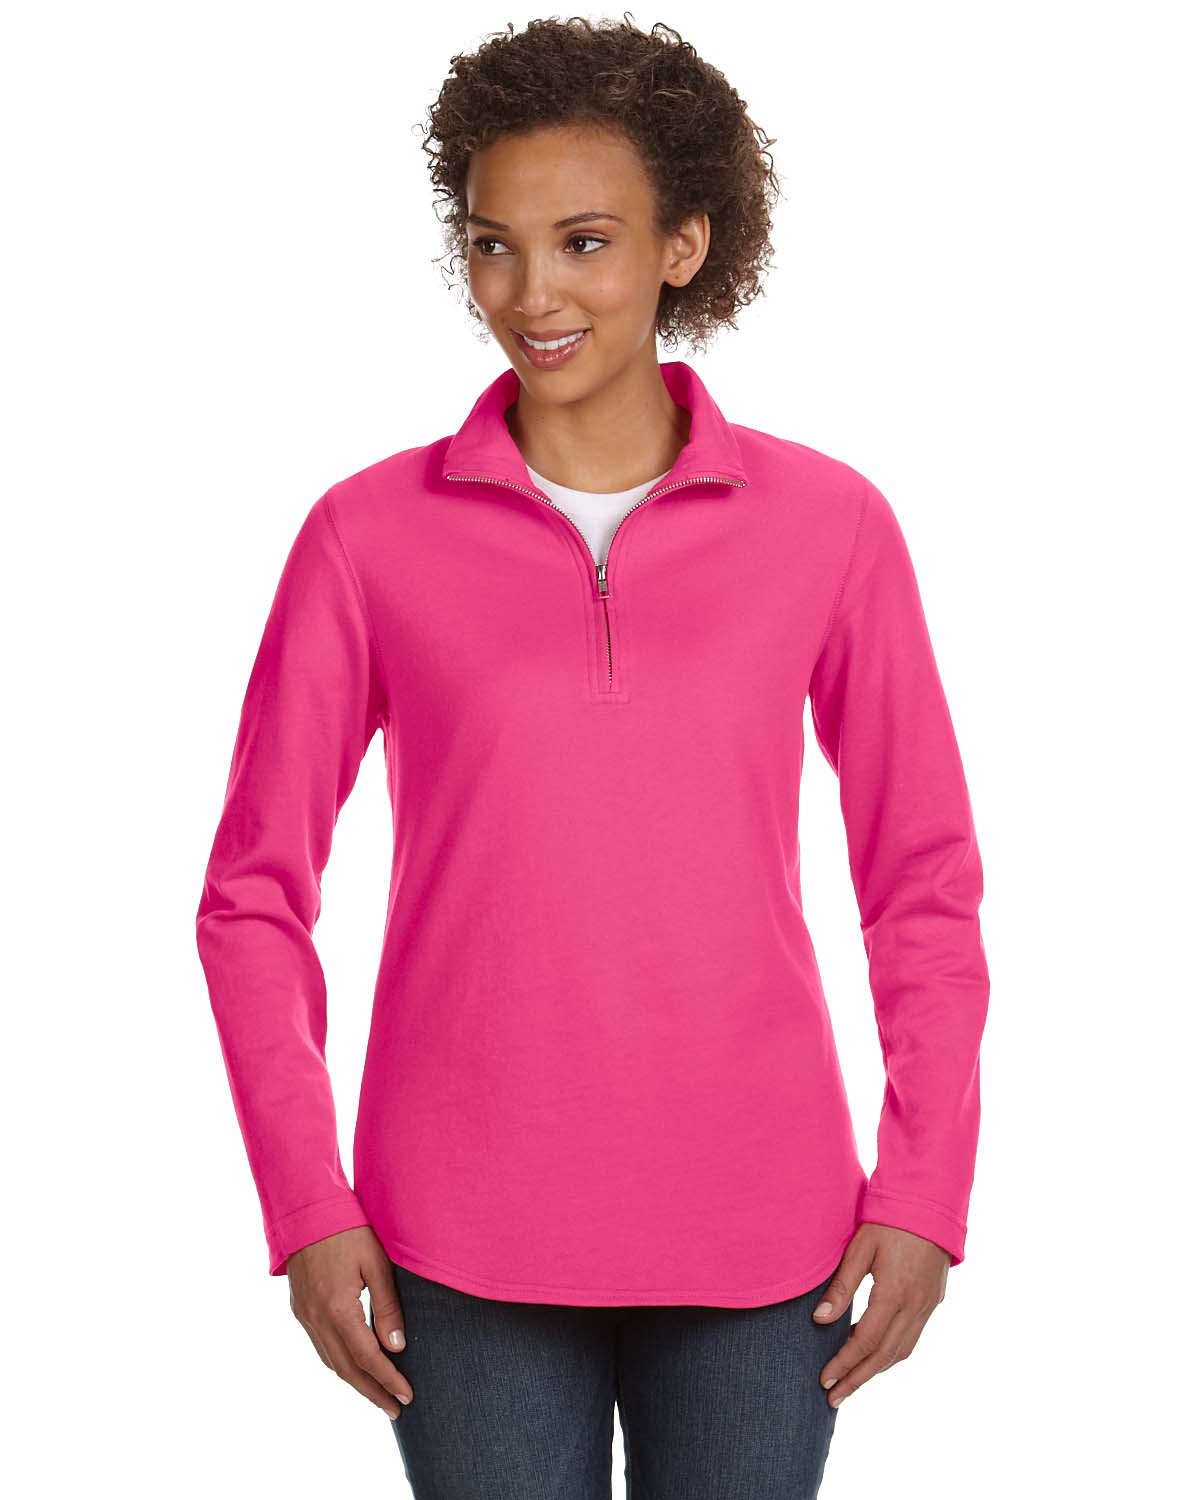 LAT Apparel 3764 Women s Quarter-Zip Pullover - Shirtmax cb7b0e8c7